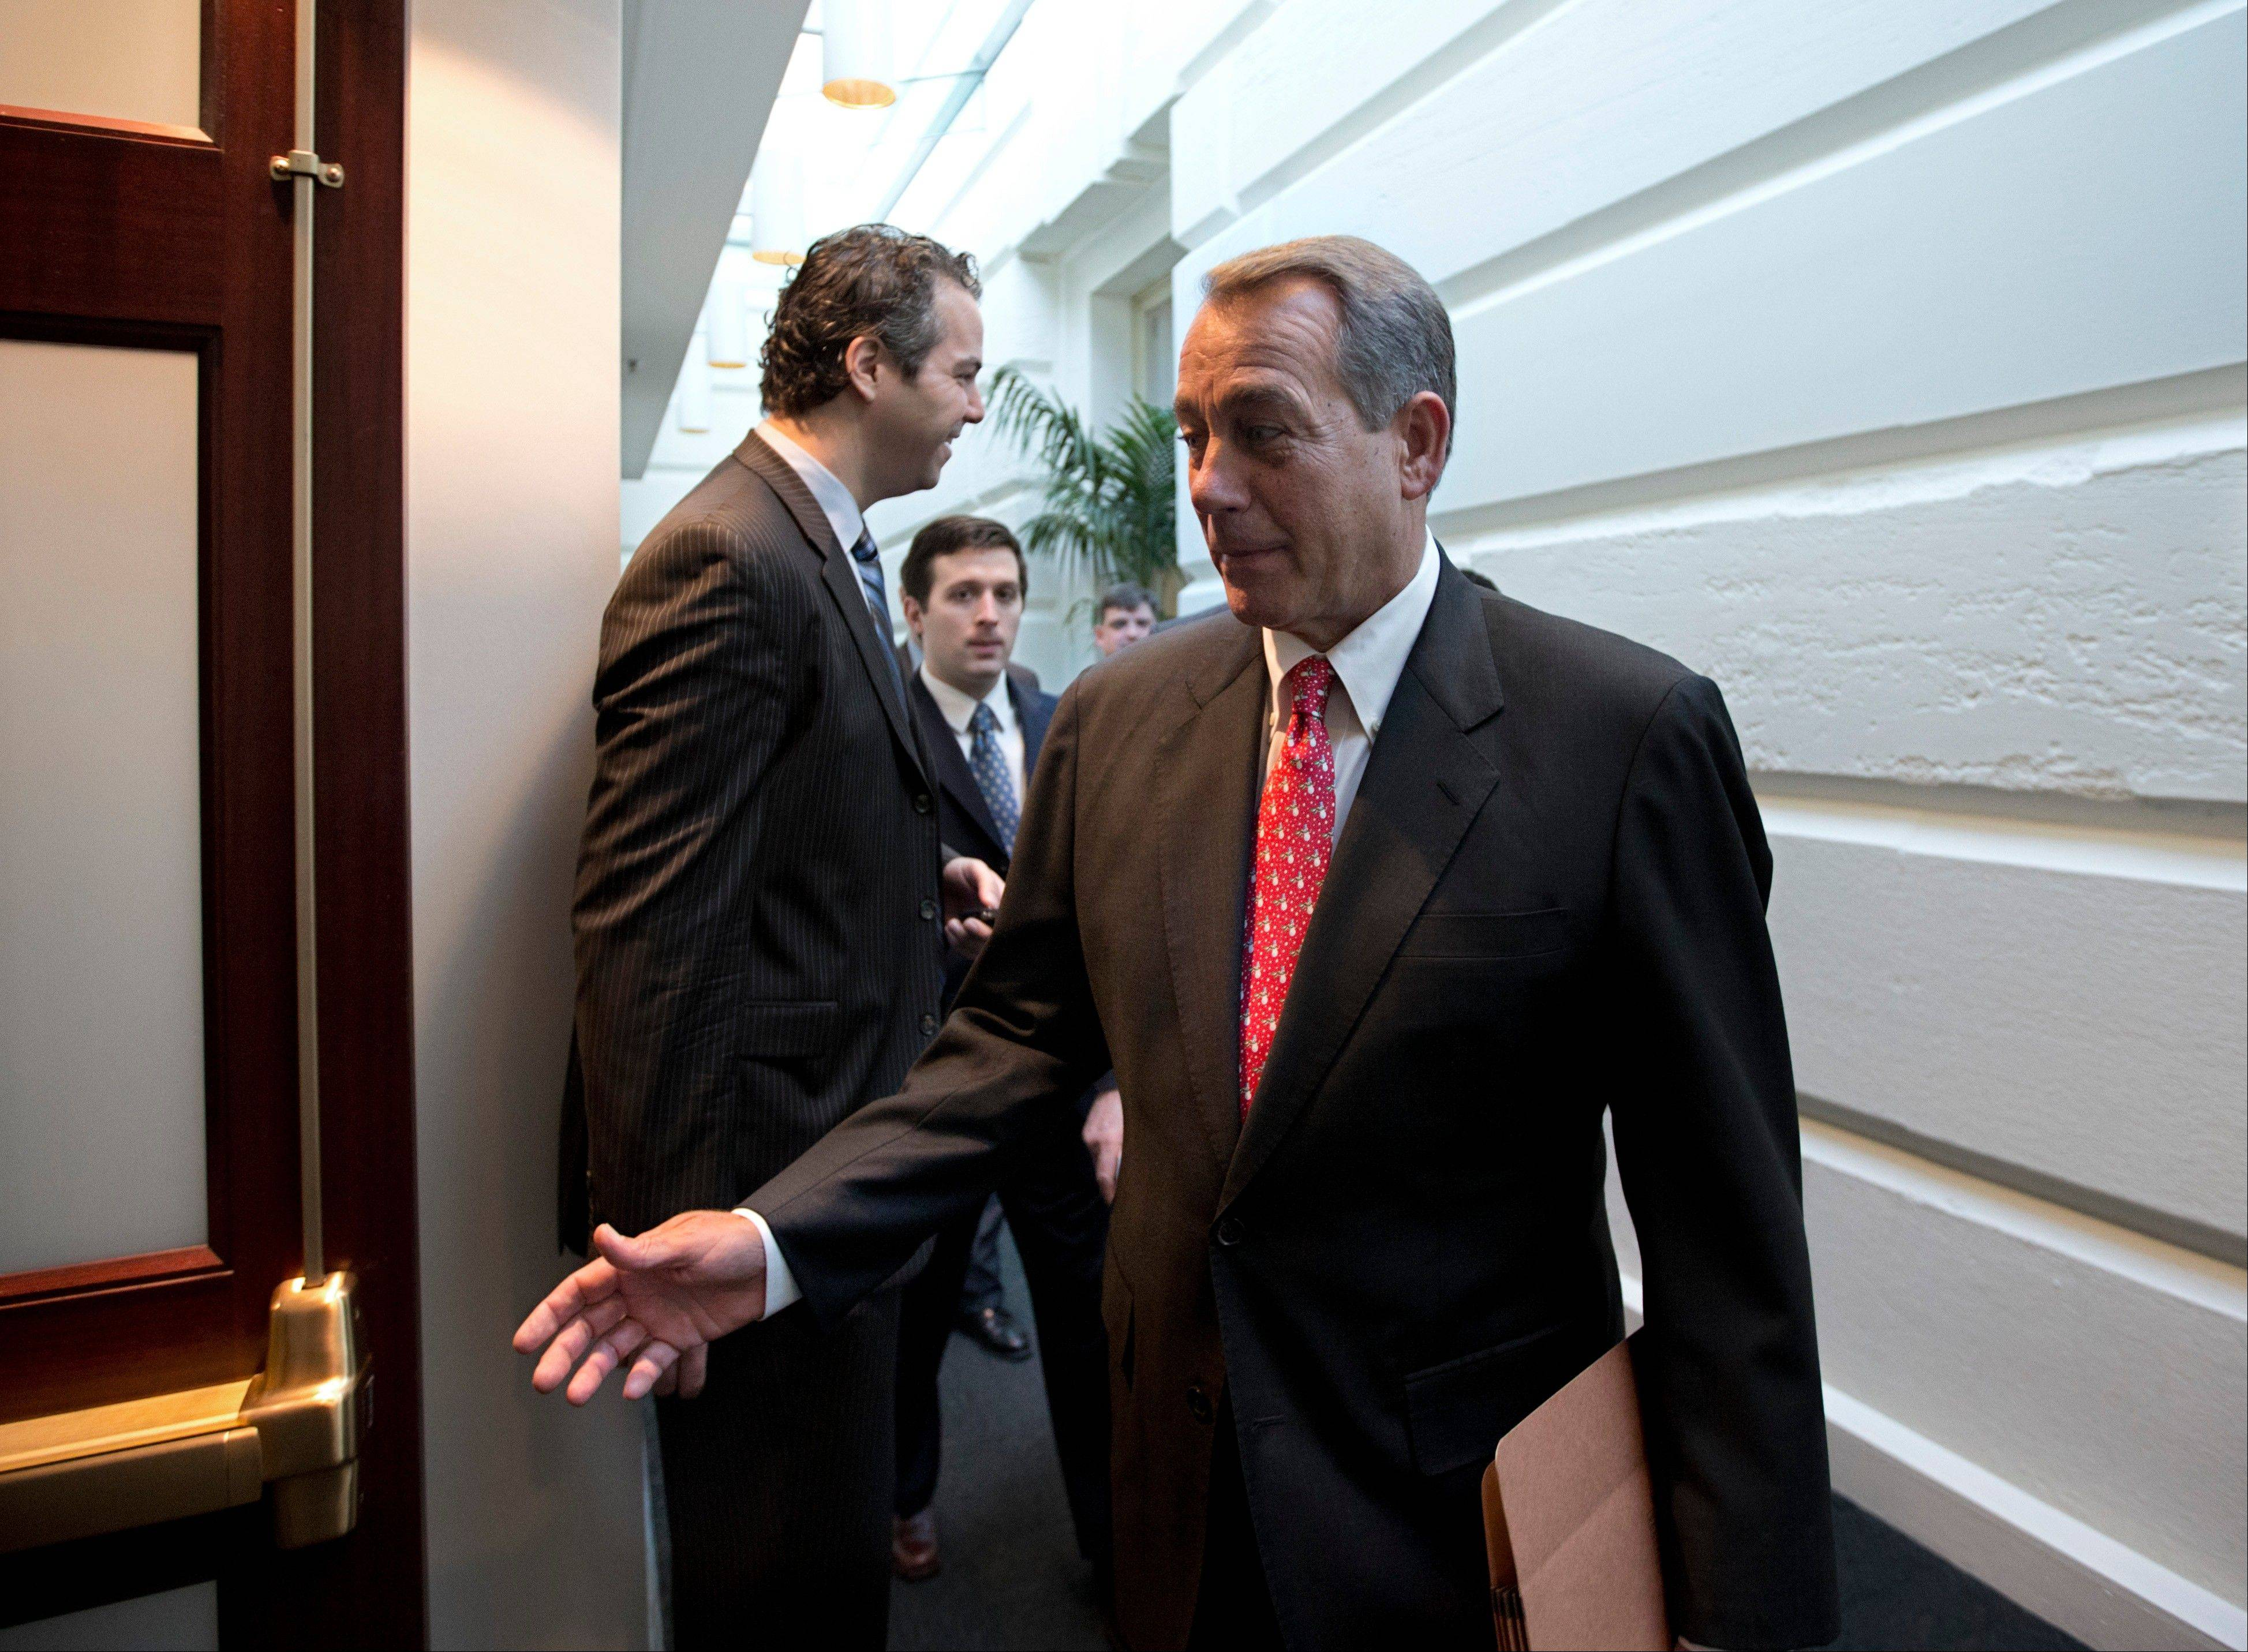 Speaker of the House John Boehner arrives for a closed-door meeting with House Republicans as he negotiates with President Obama to avert the fiscal cliff, at the Capitol in Washington on Tuesday.